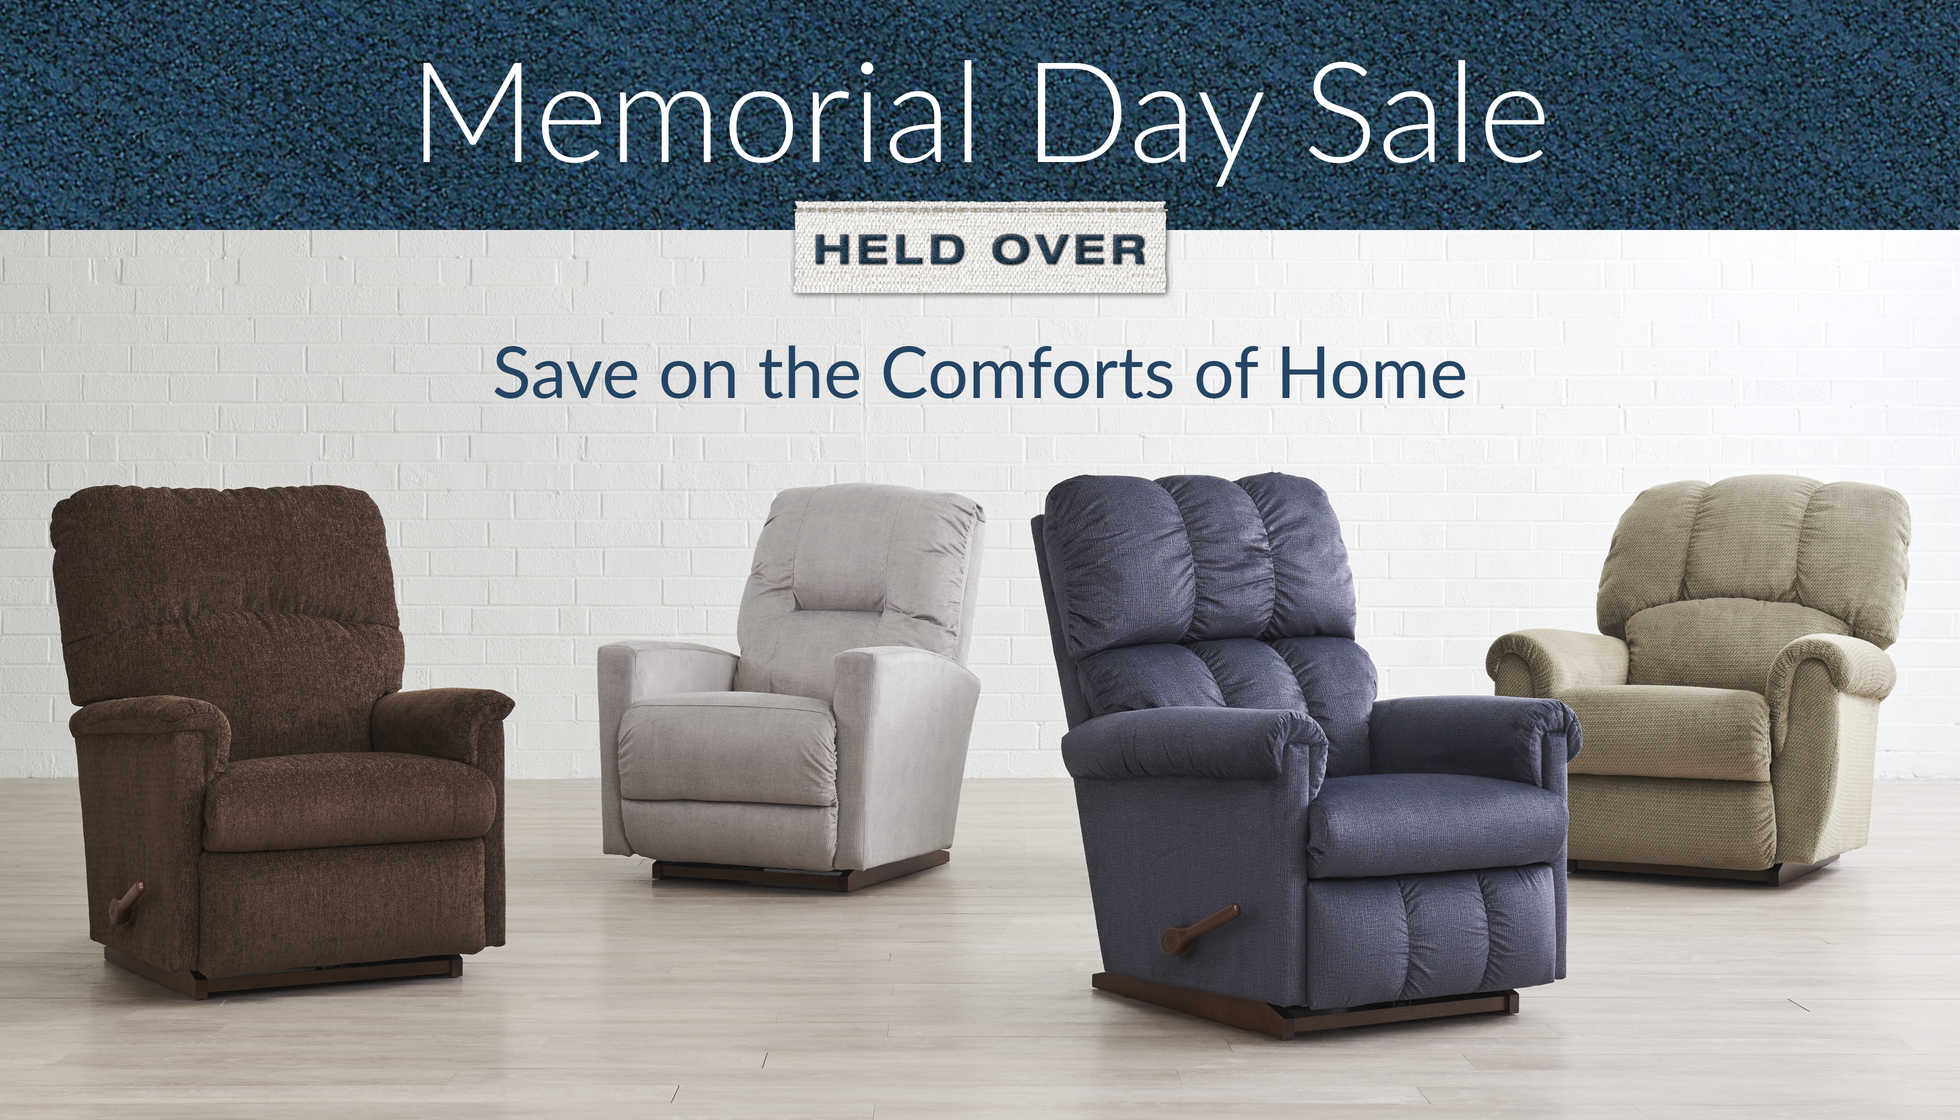 Memorial Day Sale - Save on the comforts of home. Empty room with Collage, Casey, Vail and Conner Rocking Recliners